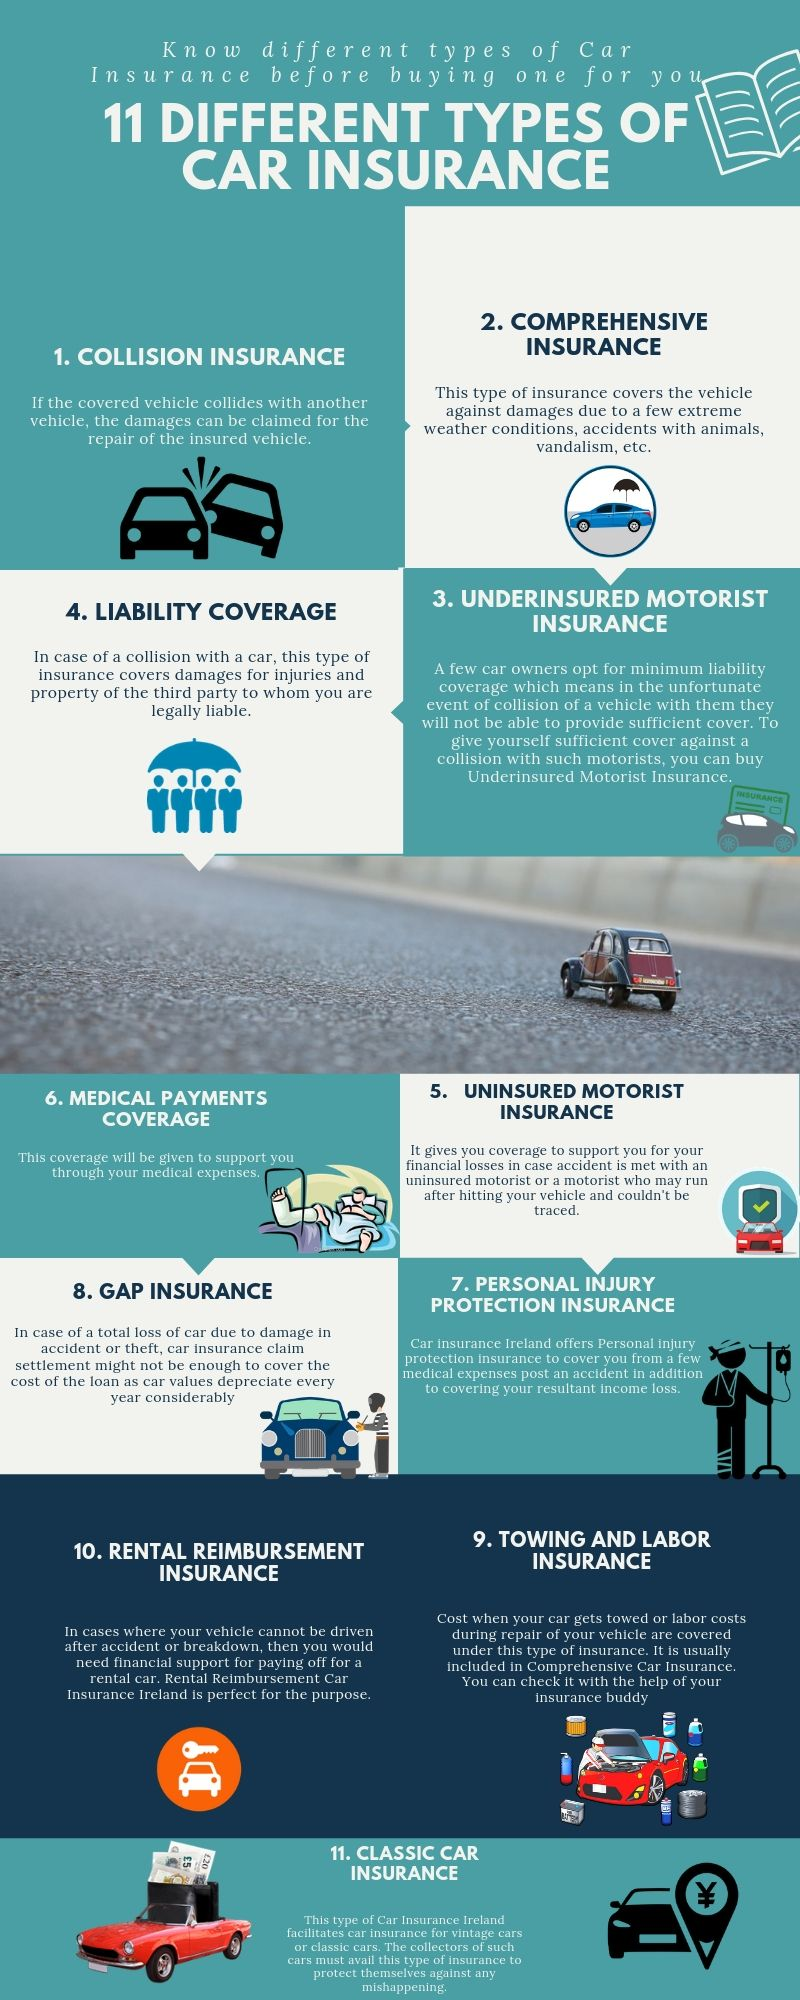 Car insurance is mandated for every car owner in Ireland